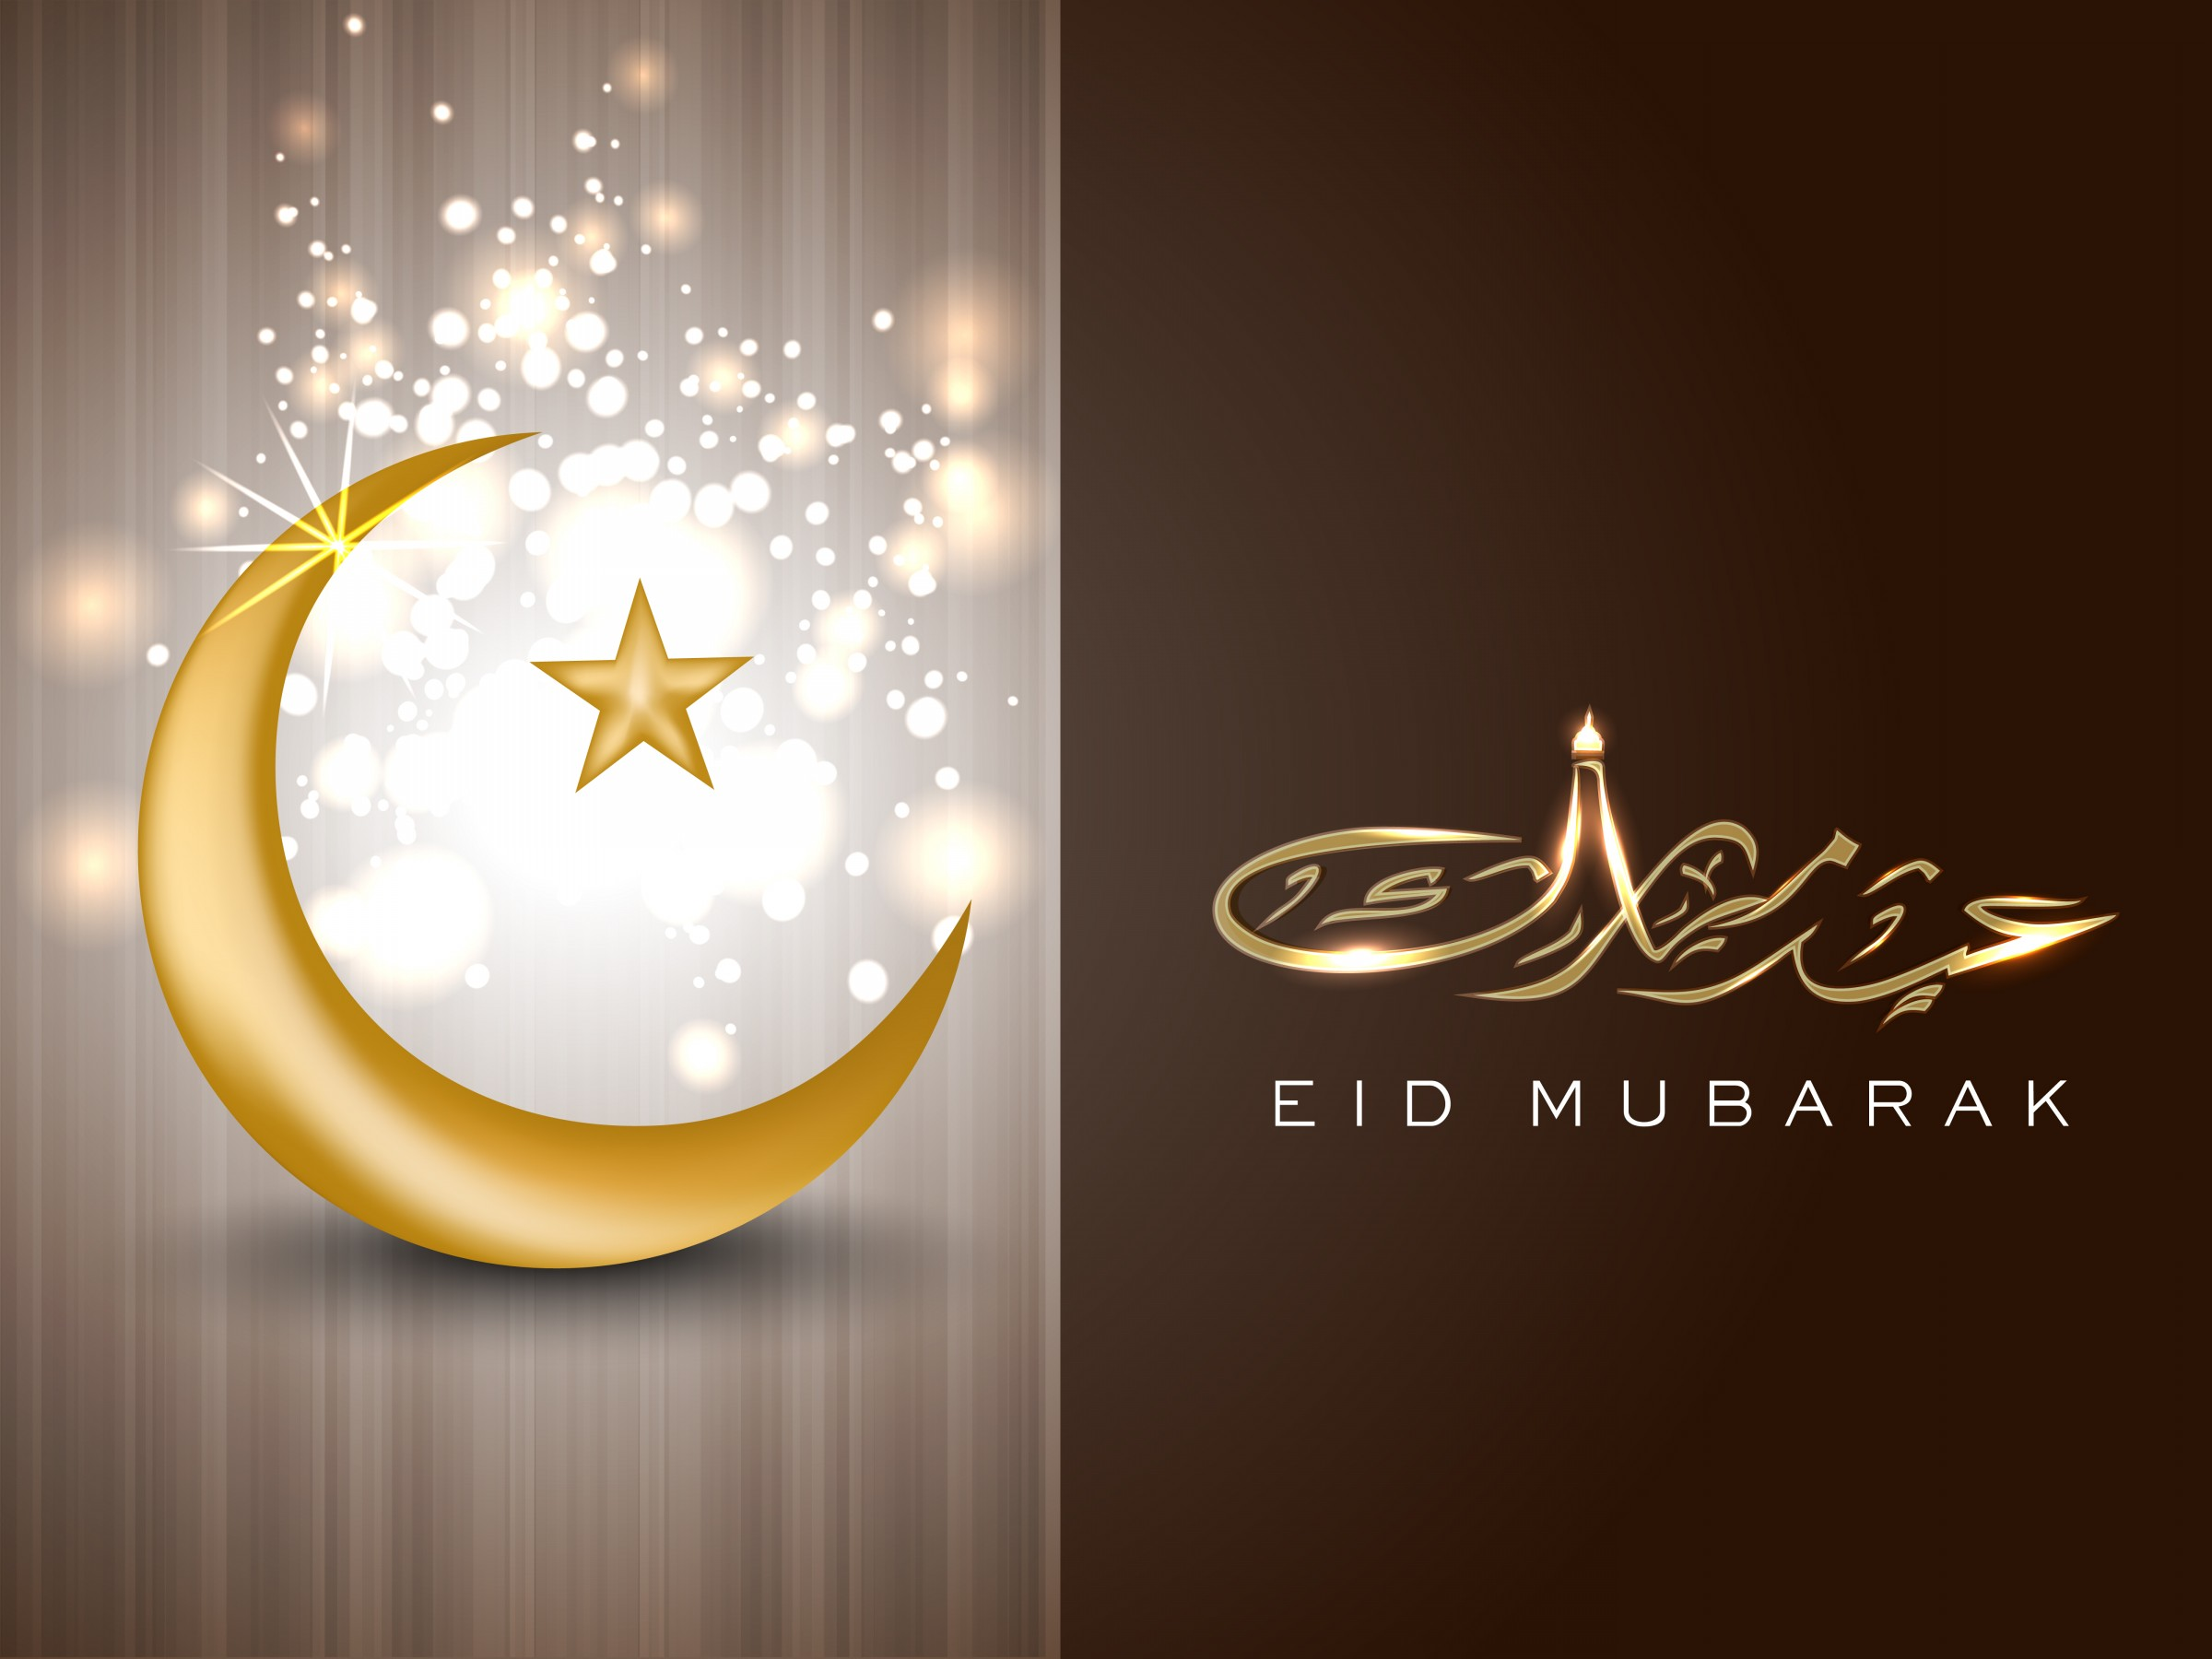 mjc calls for unity in eid message - Eid al adha designs 5 - MJC calls for unity in Eid message